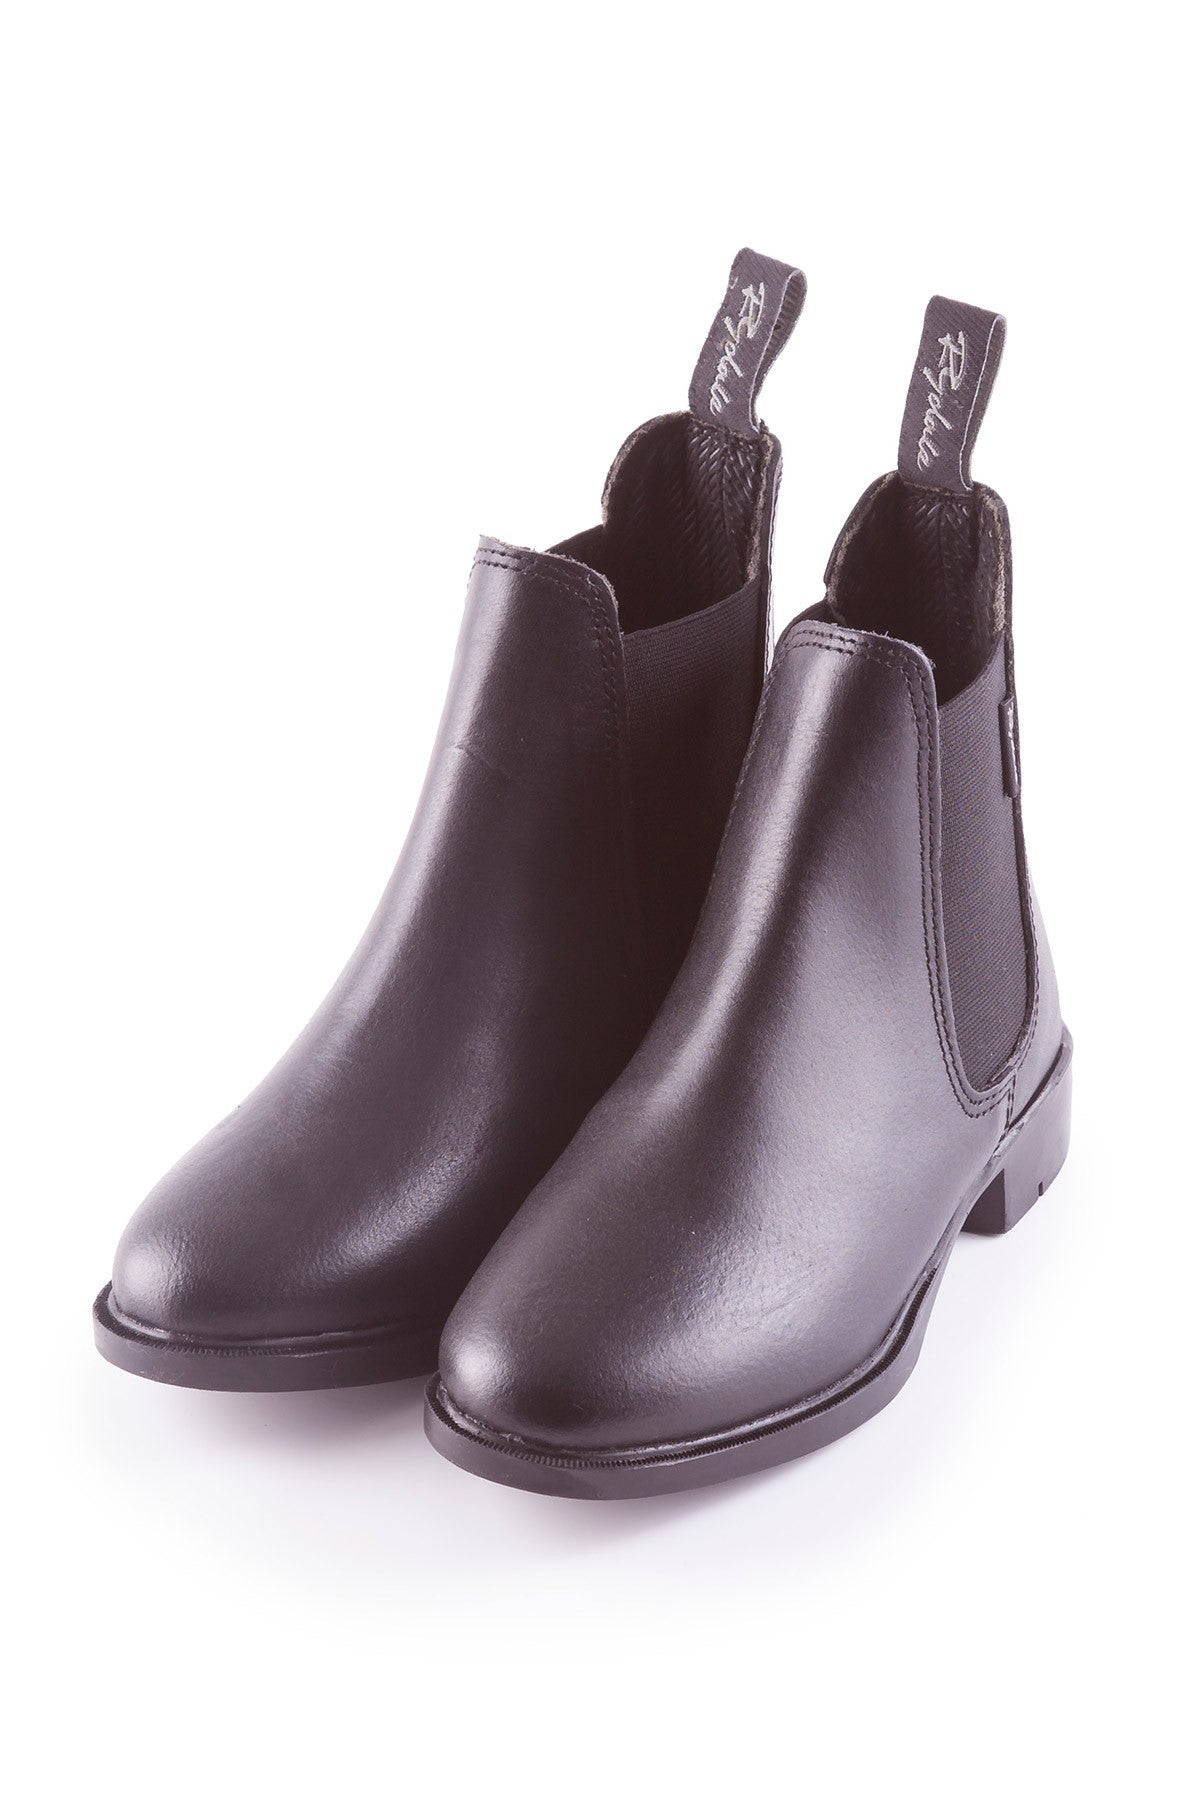 rydale tullymore boots